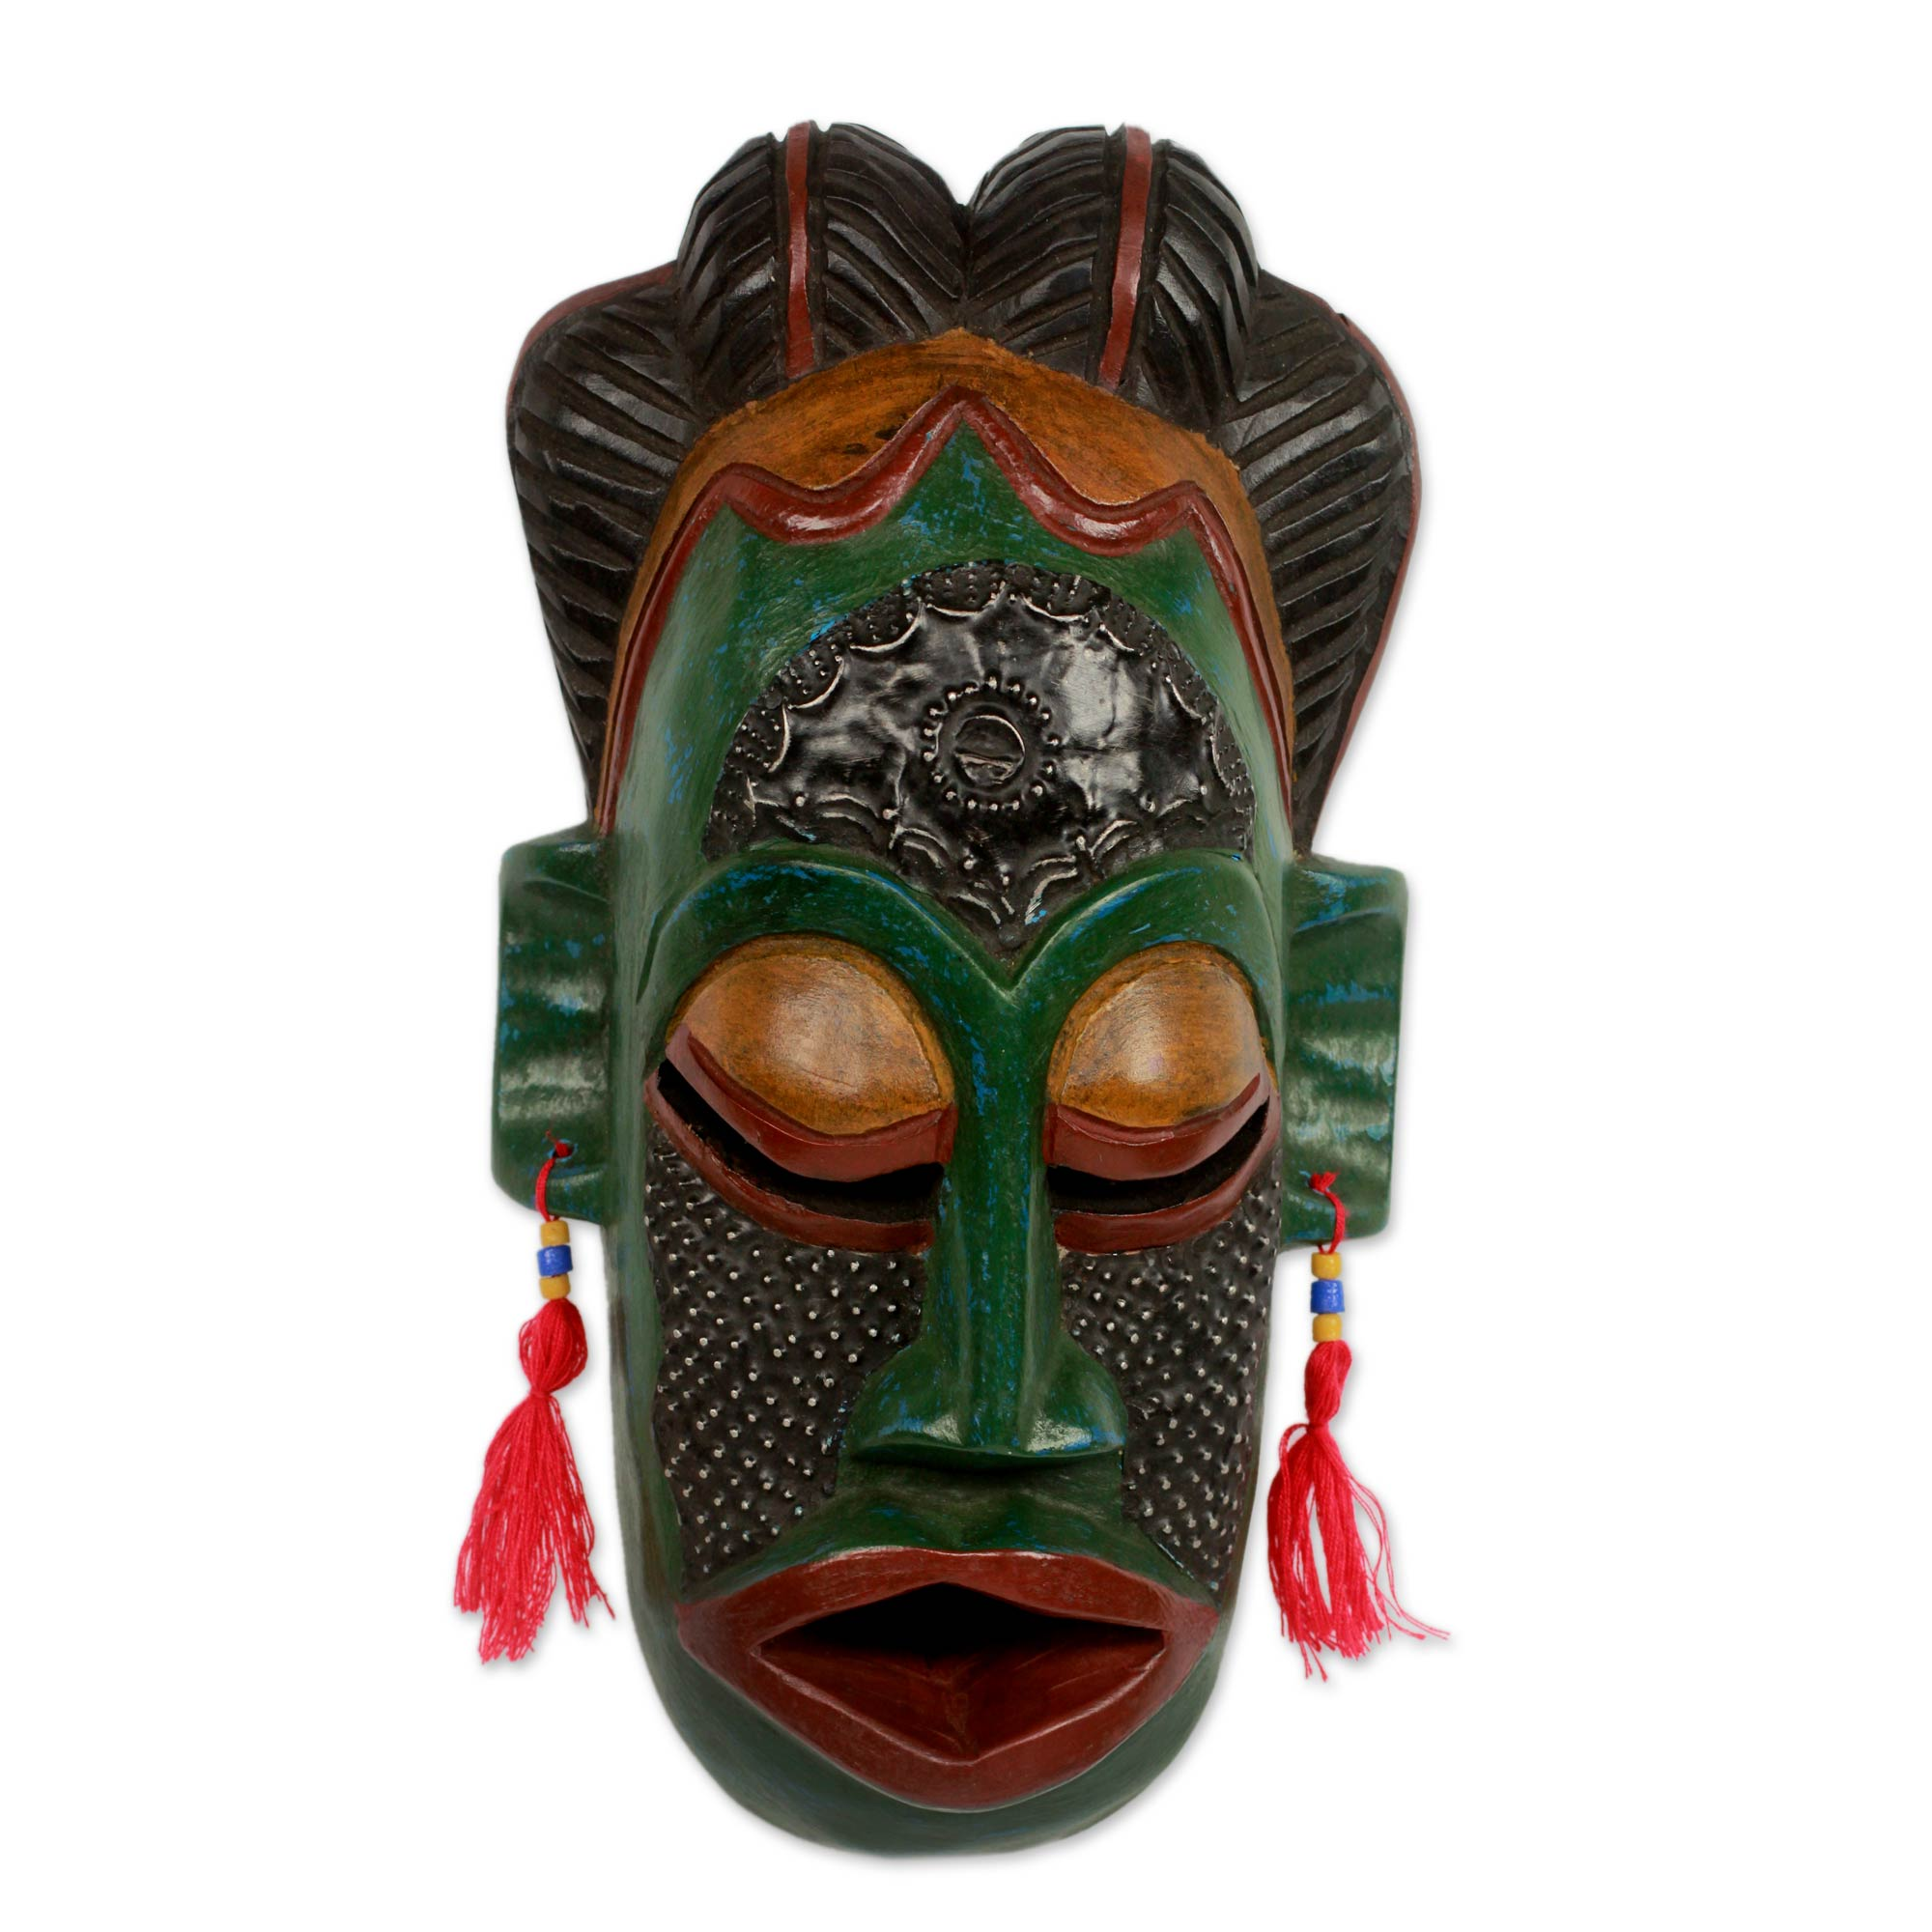 Fair Trade Wood Mask from West Africa, 'Blessing the Mother Goddess'